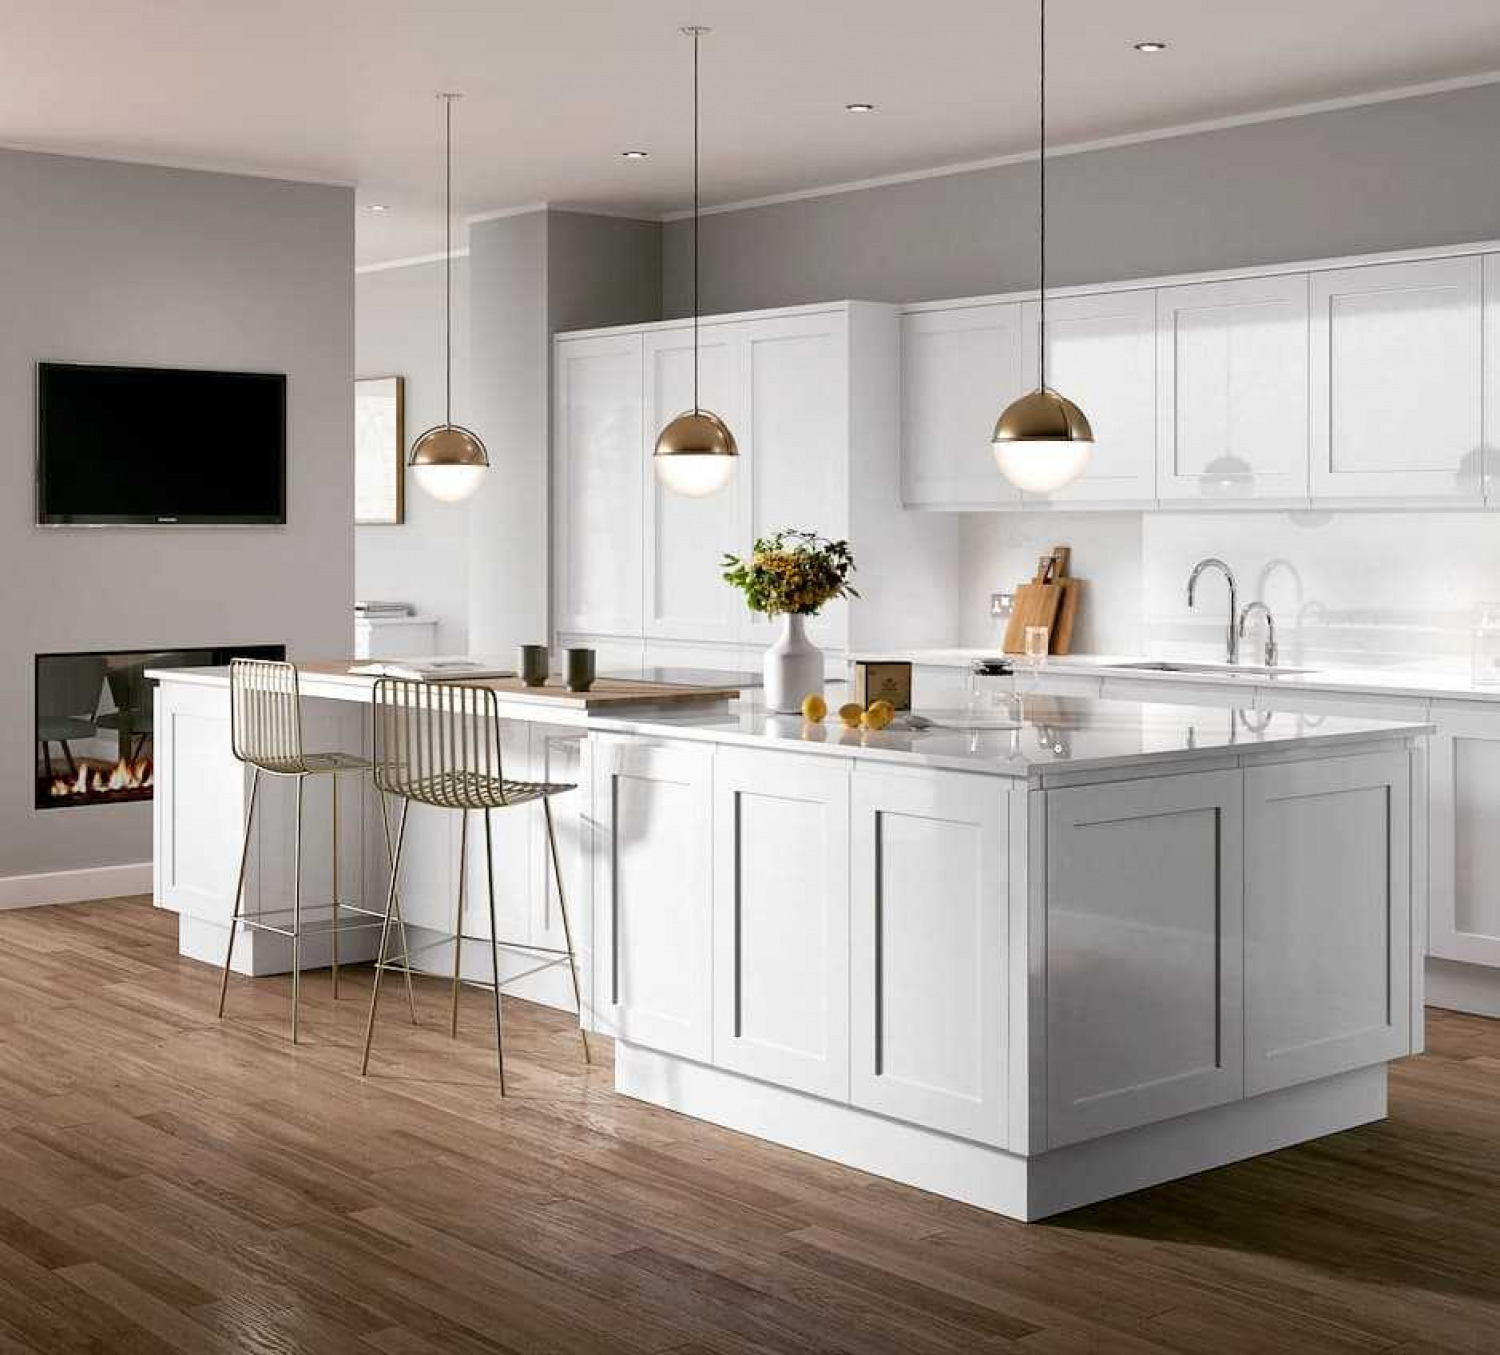 How To Choose Kitchen Flooring For Your Home Omega Plc